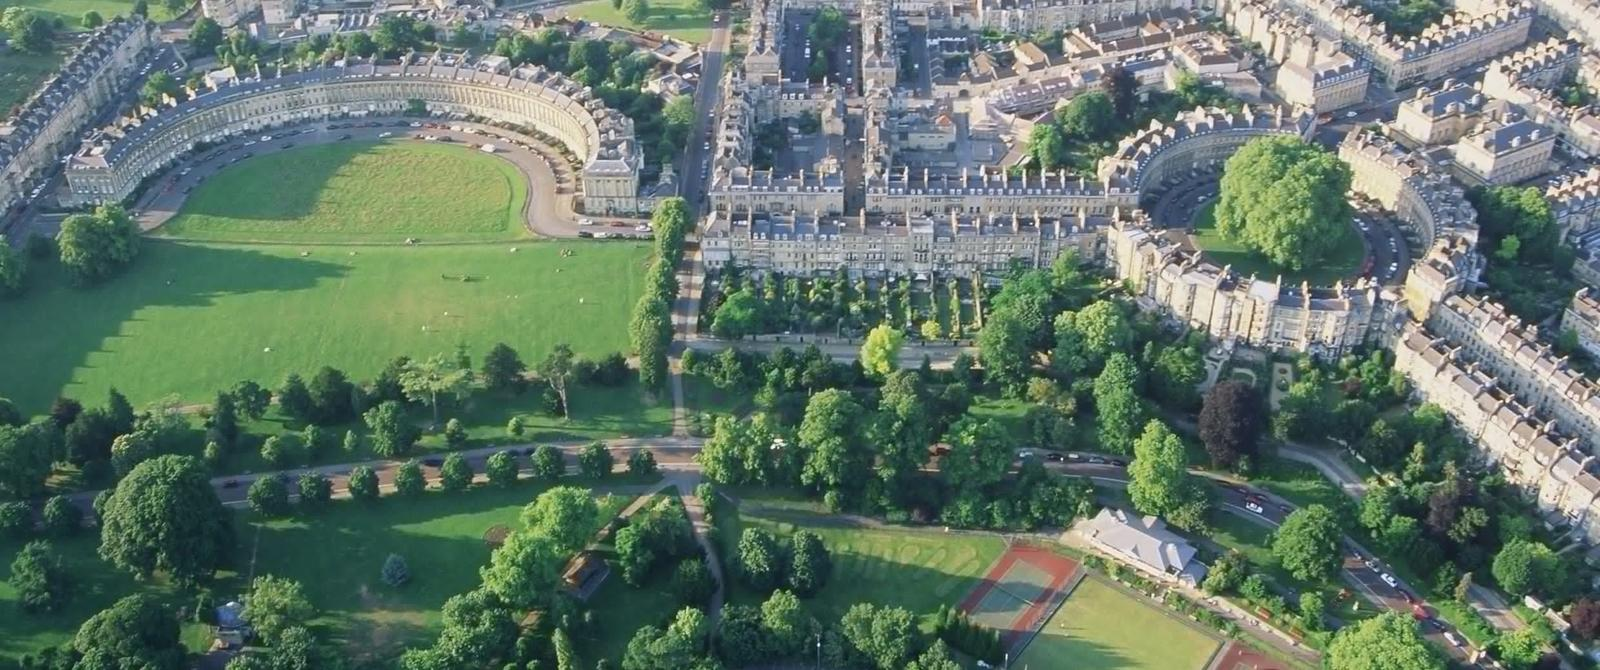 image:aerial view of the Royal Crescent and Circus